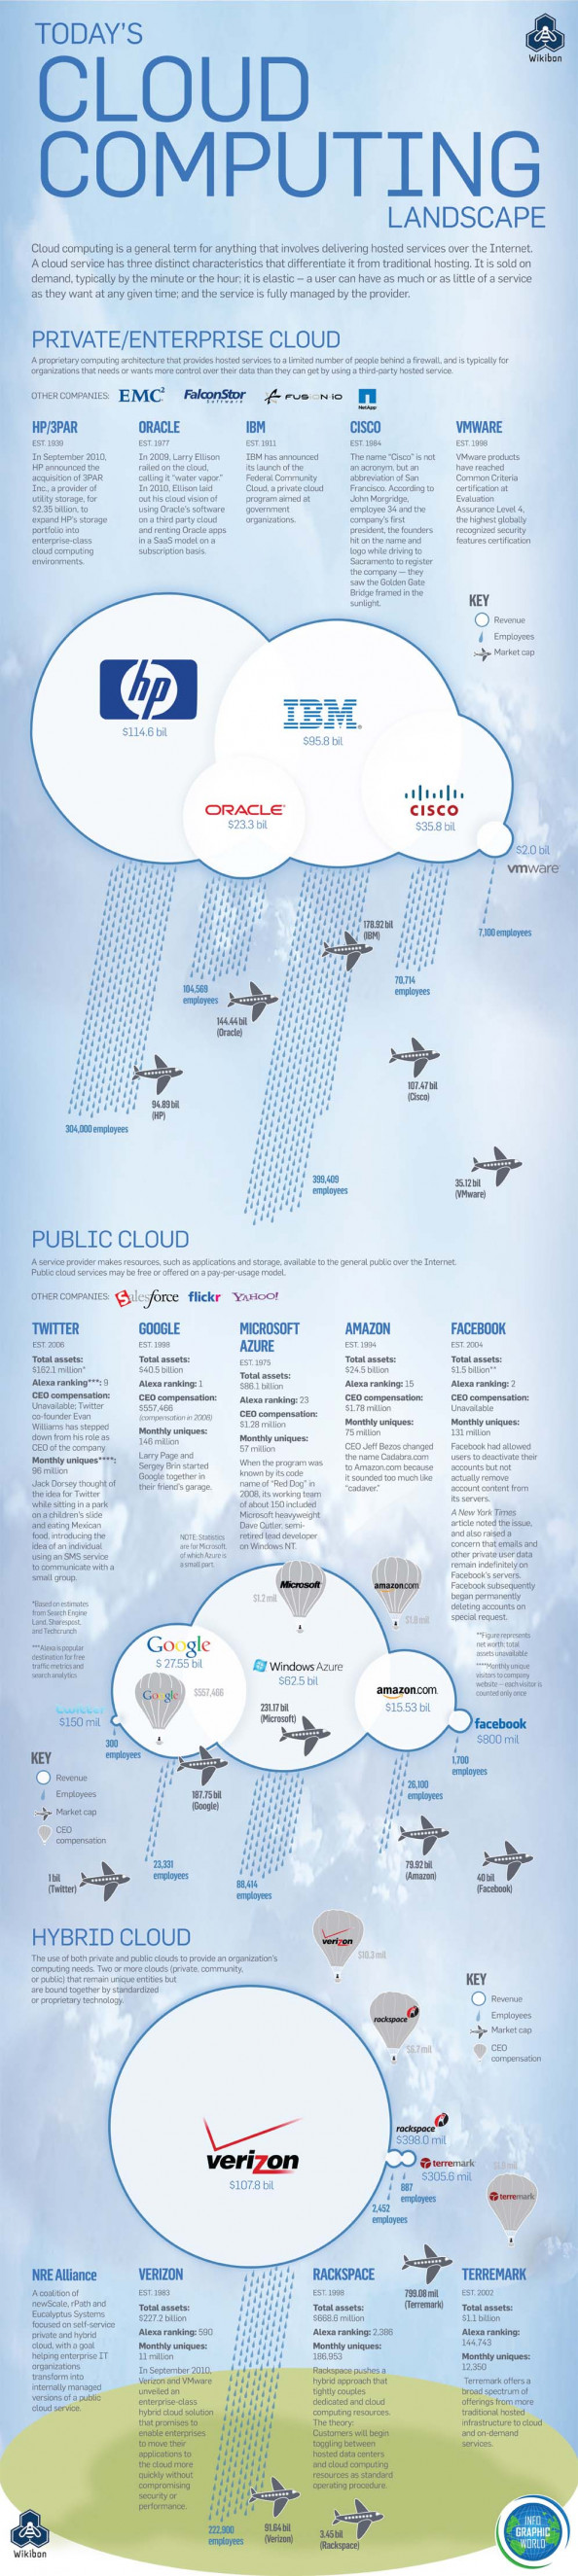 Today&#039;s Cloud Computing Landscape Infographic